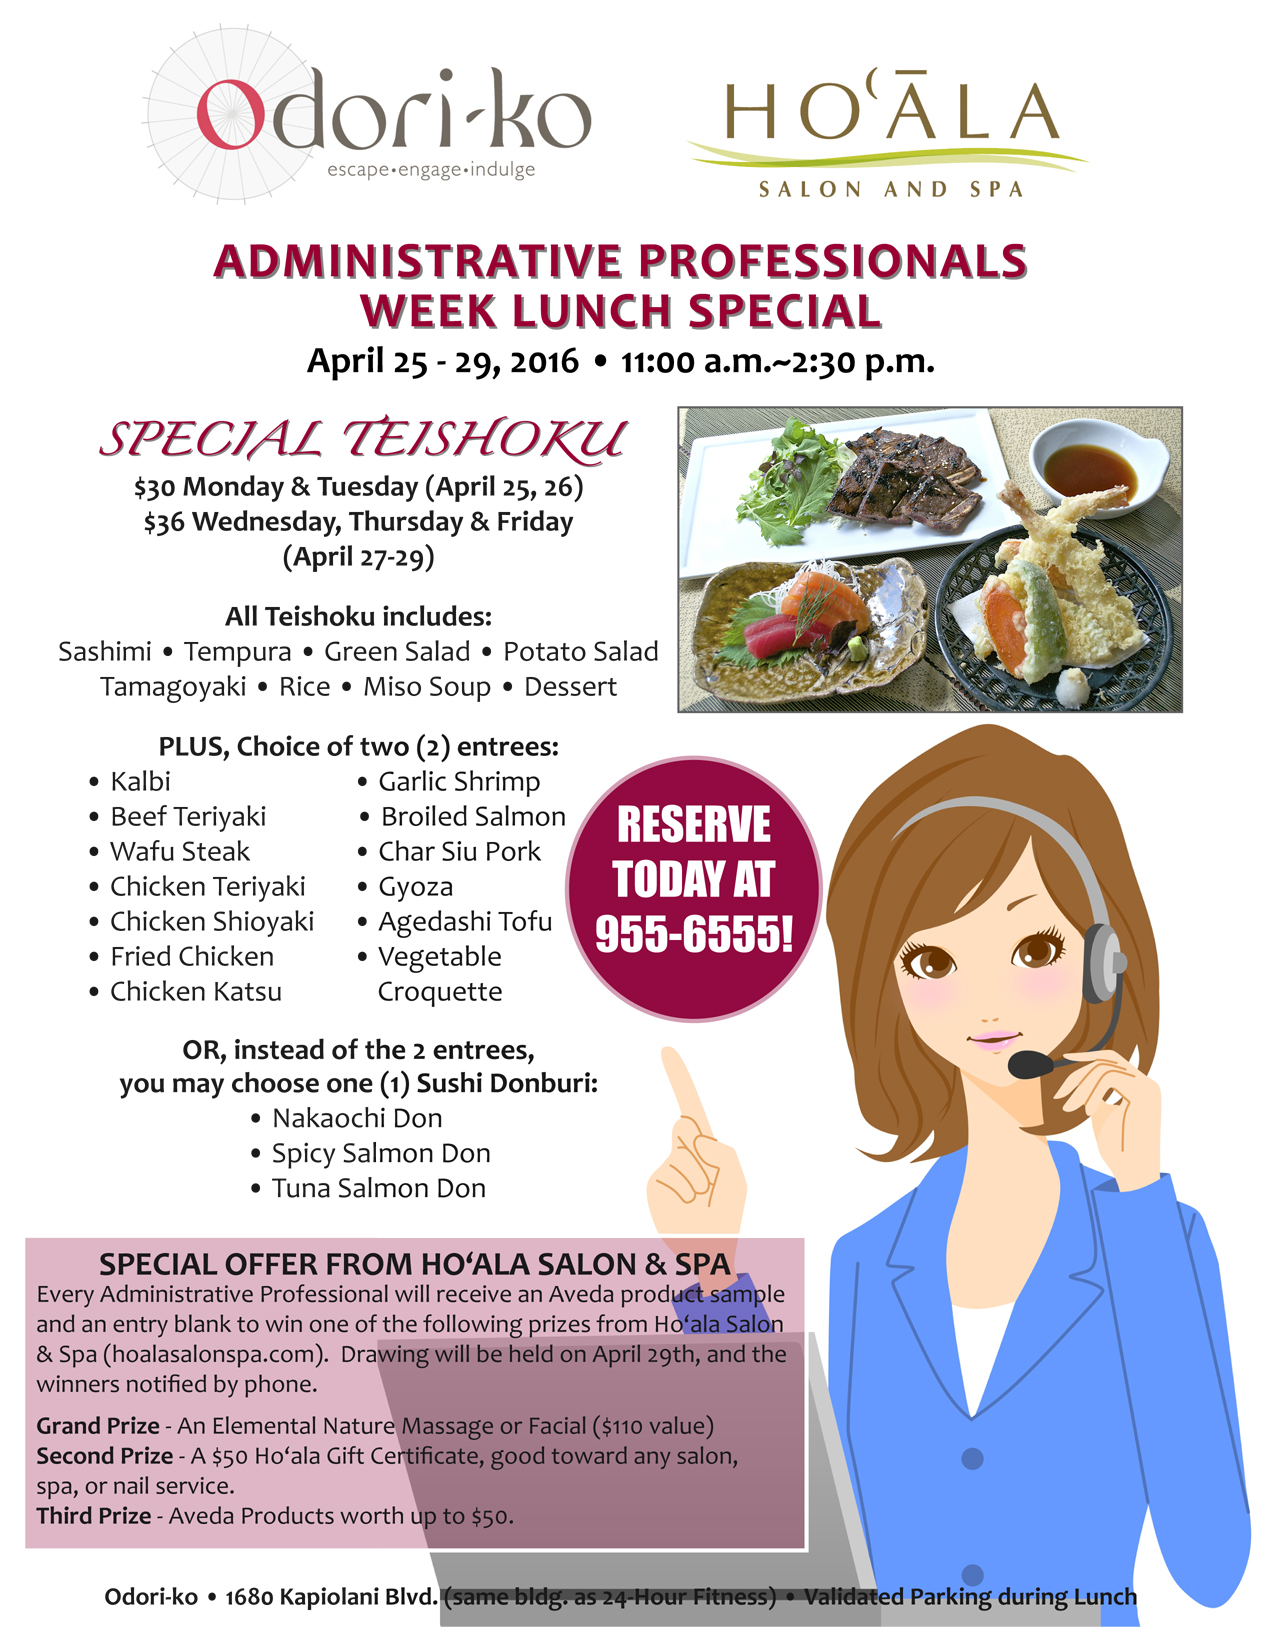 Odori-ko | Administrative Professionals Week Lunch Special!